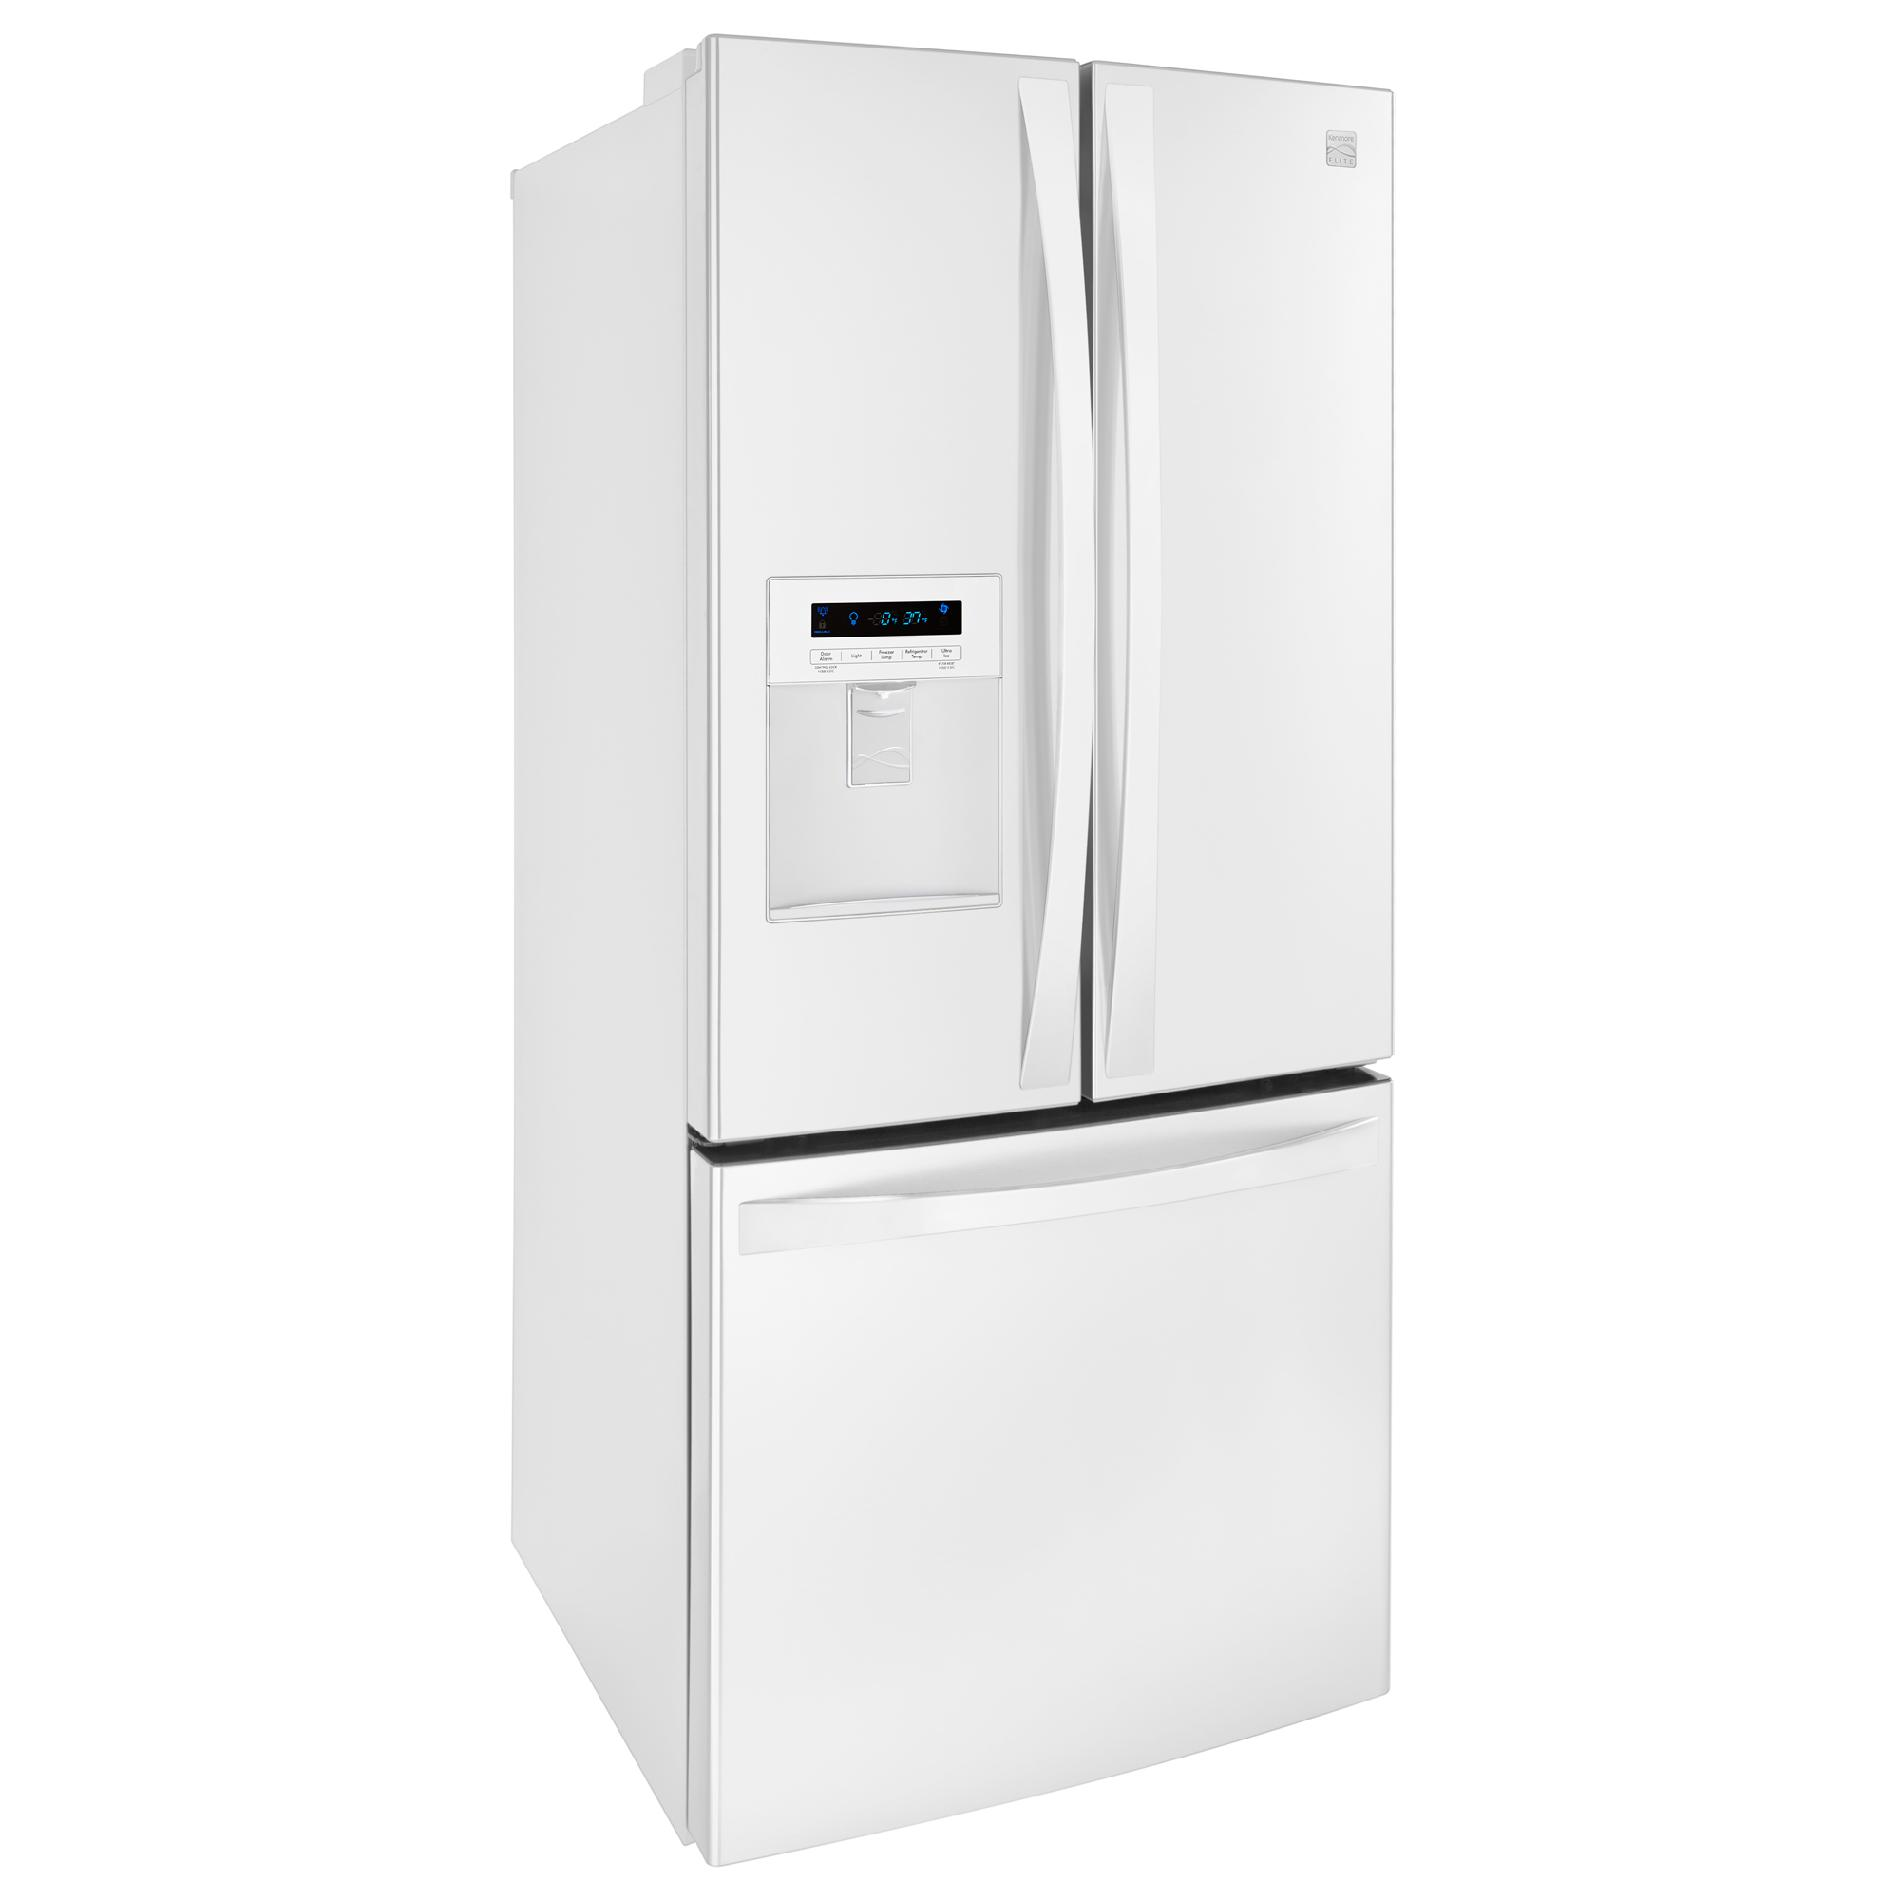 Kenmore Elite 71322 21.8cu. ft. French Door Bottom-freezer Refrigerator w/ Water Dispenser - White